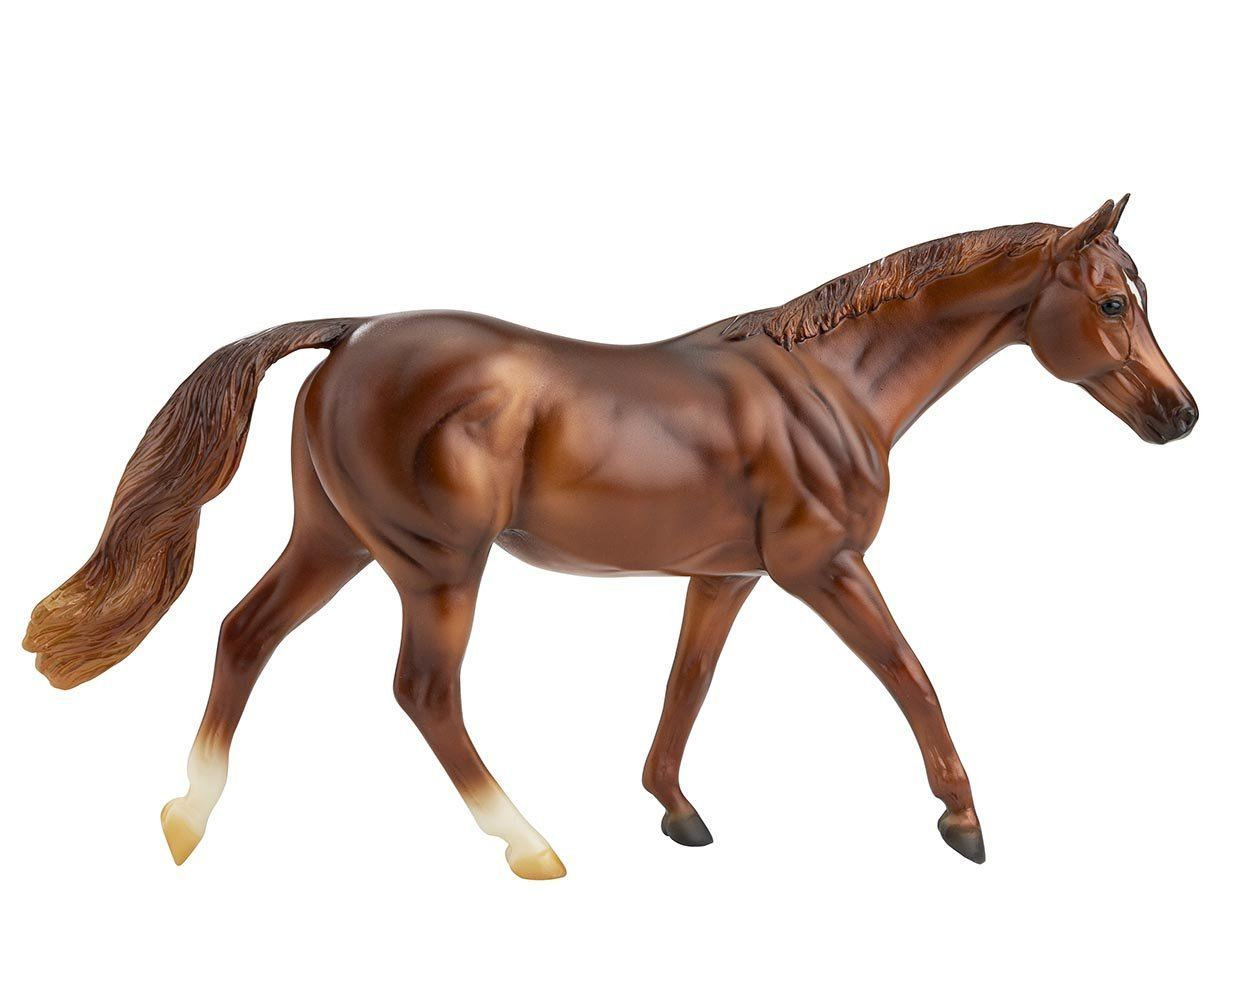 #957 Coppery Chestnut Thoroughbred Classic Freedom Chestnut Warmblood Mare